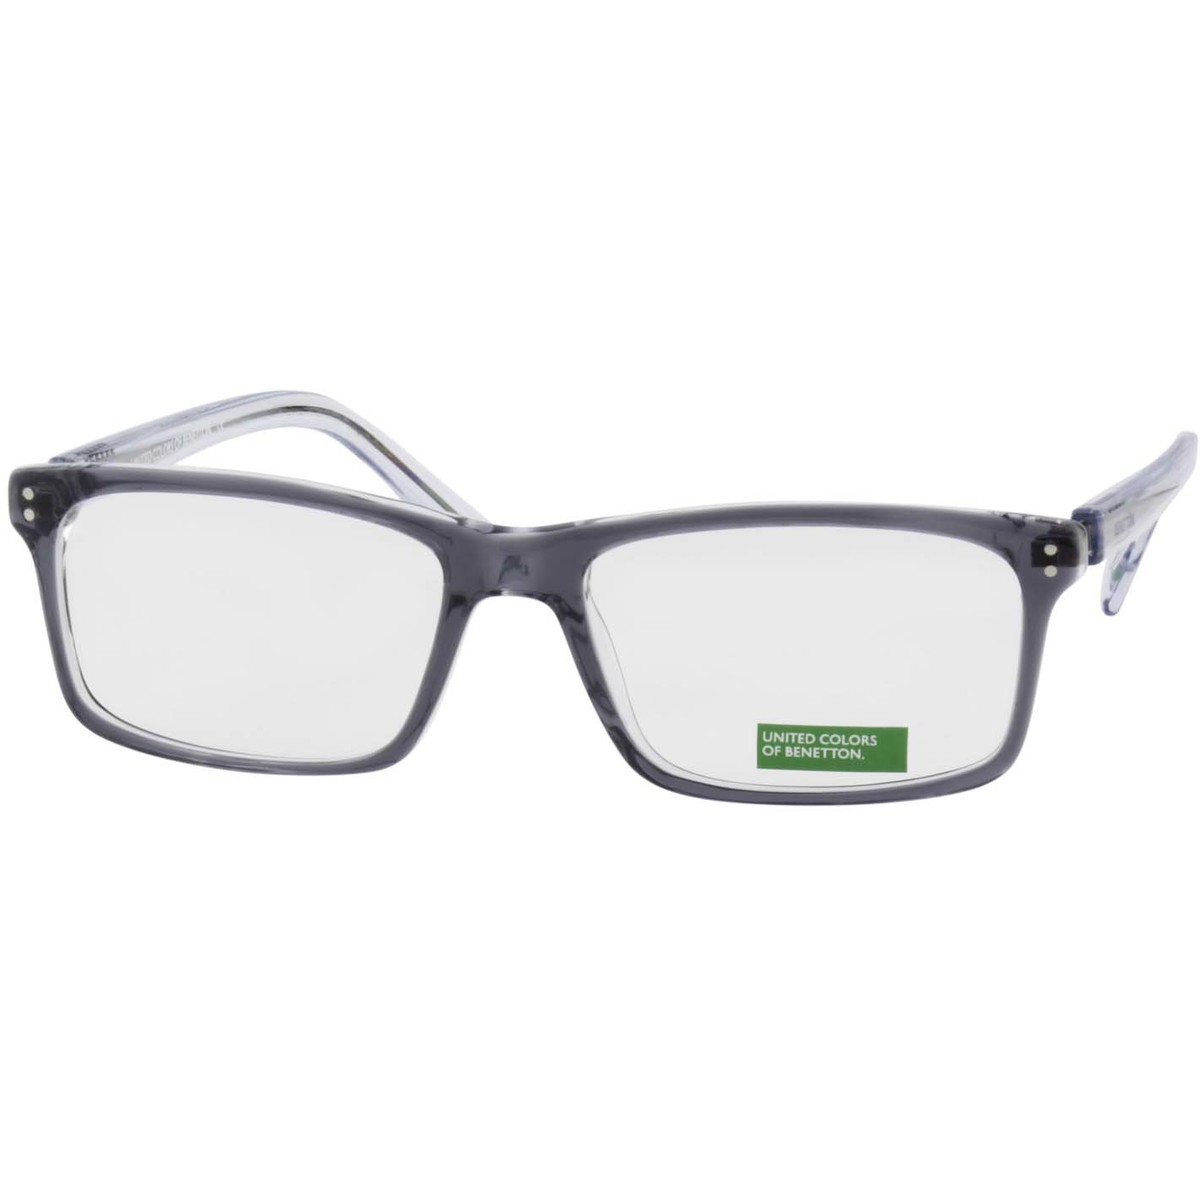 Rame ochelari vedere barbati UNITED COLORS OF BENETTON BN239V01 de la United Colors of Benetton